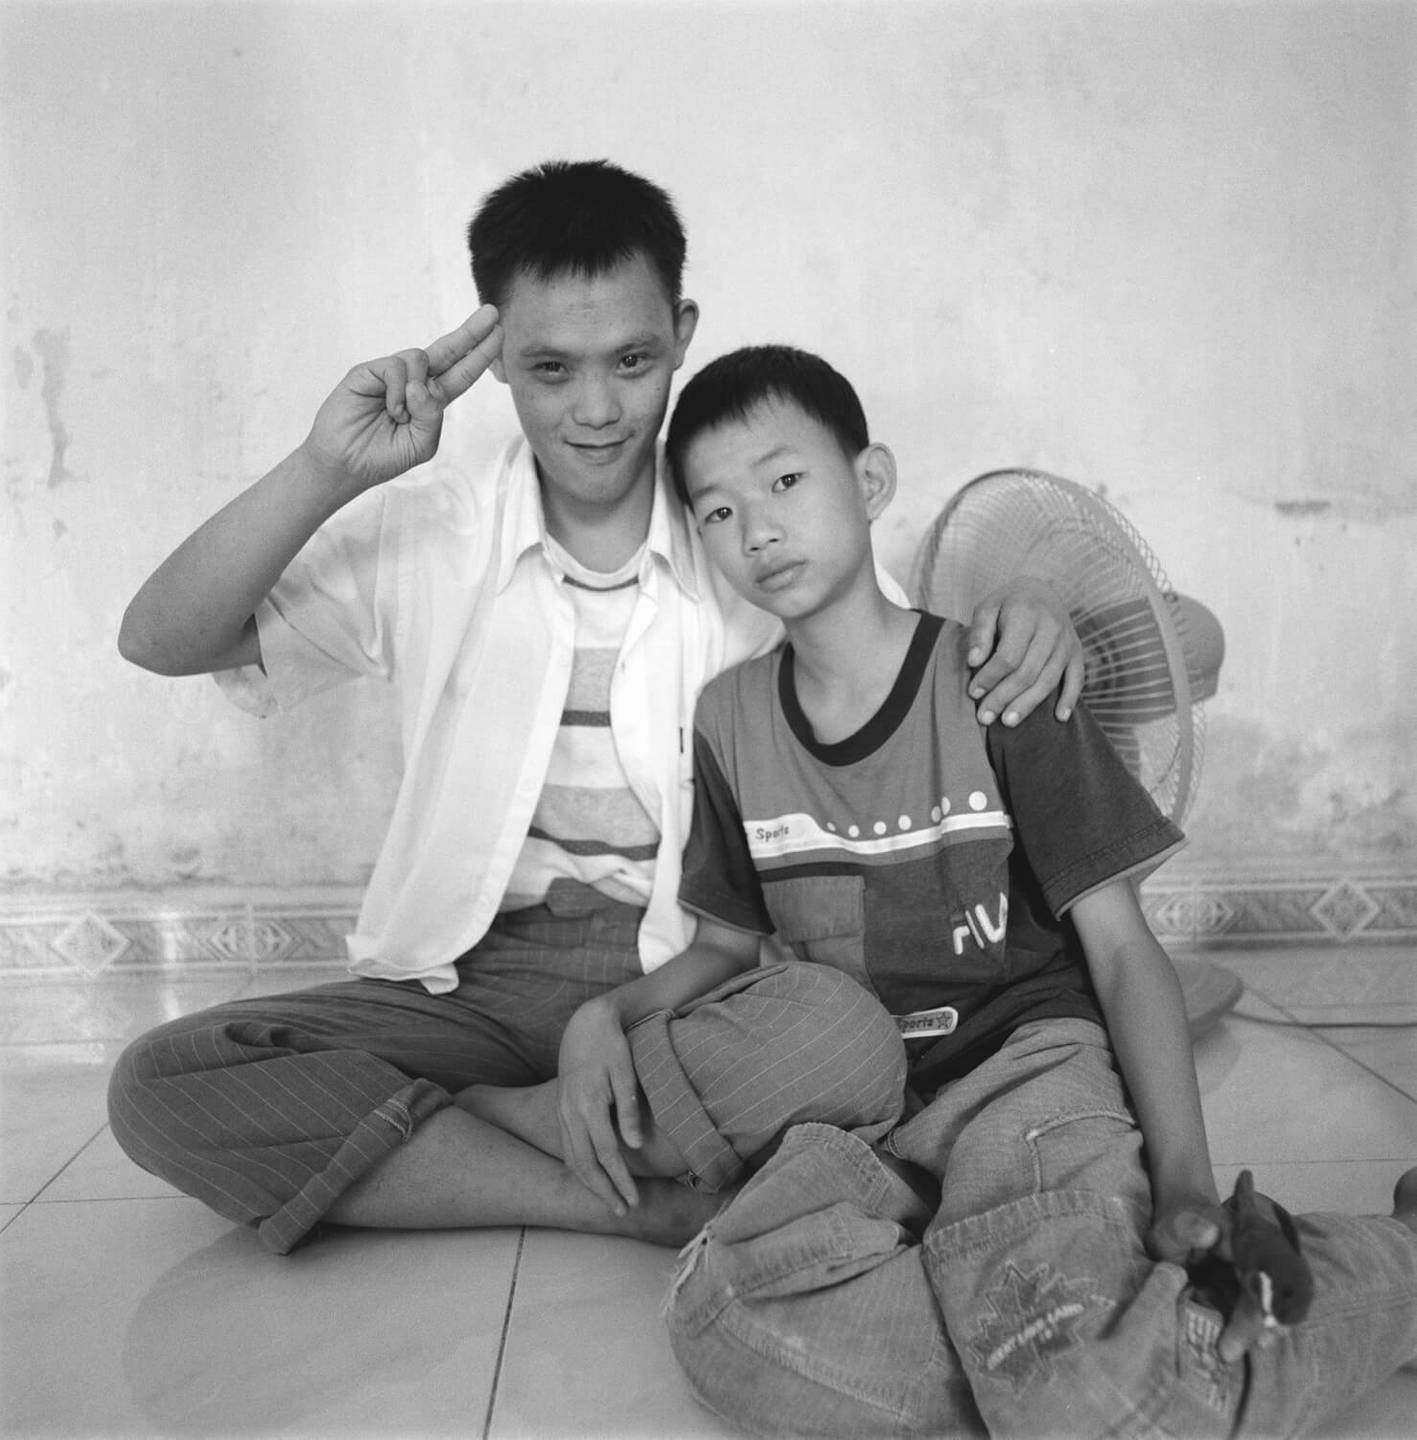 Two young Asian men seated on a tile floor. The older appears deformed and is doing a two-finger salute.